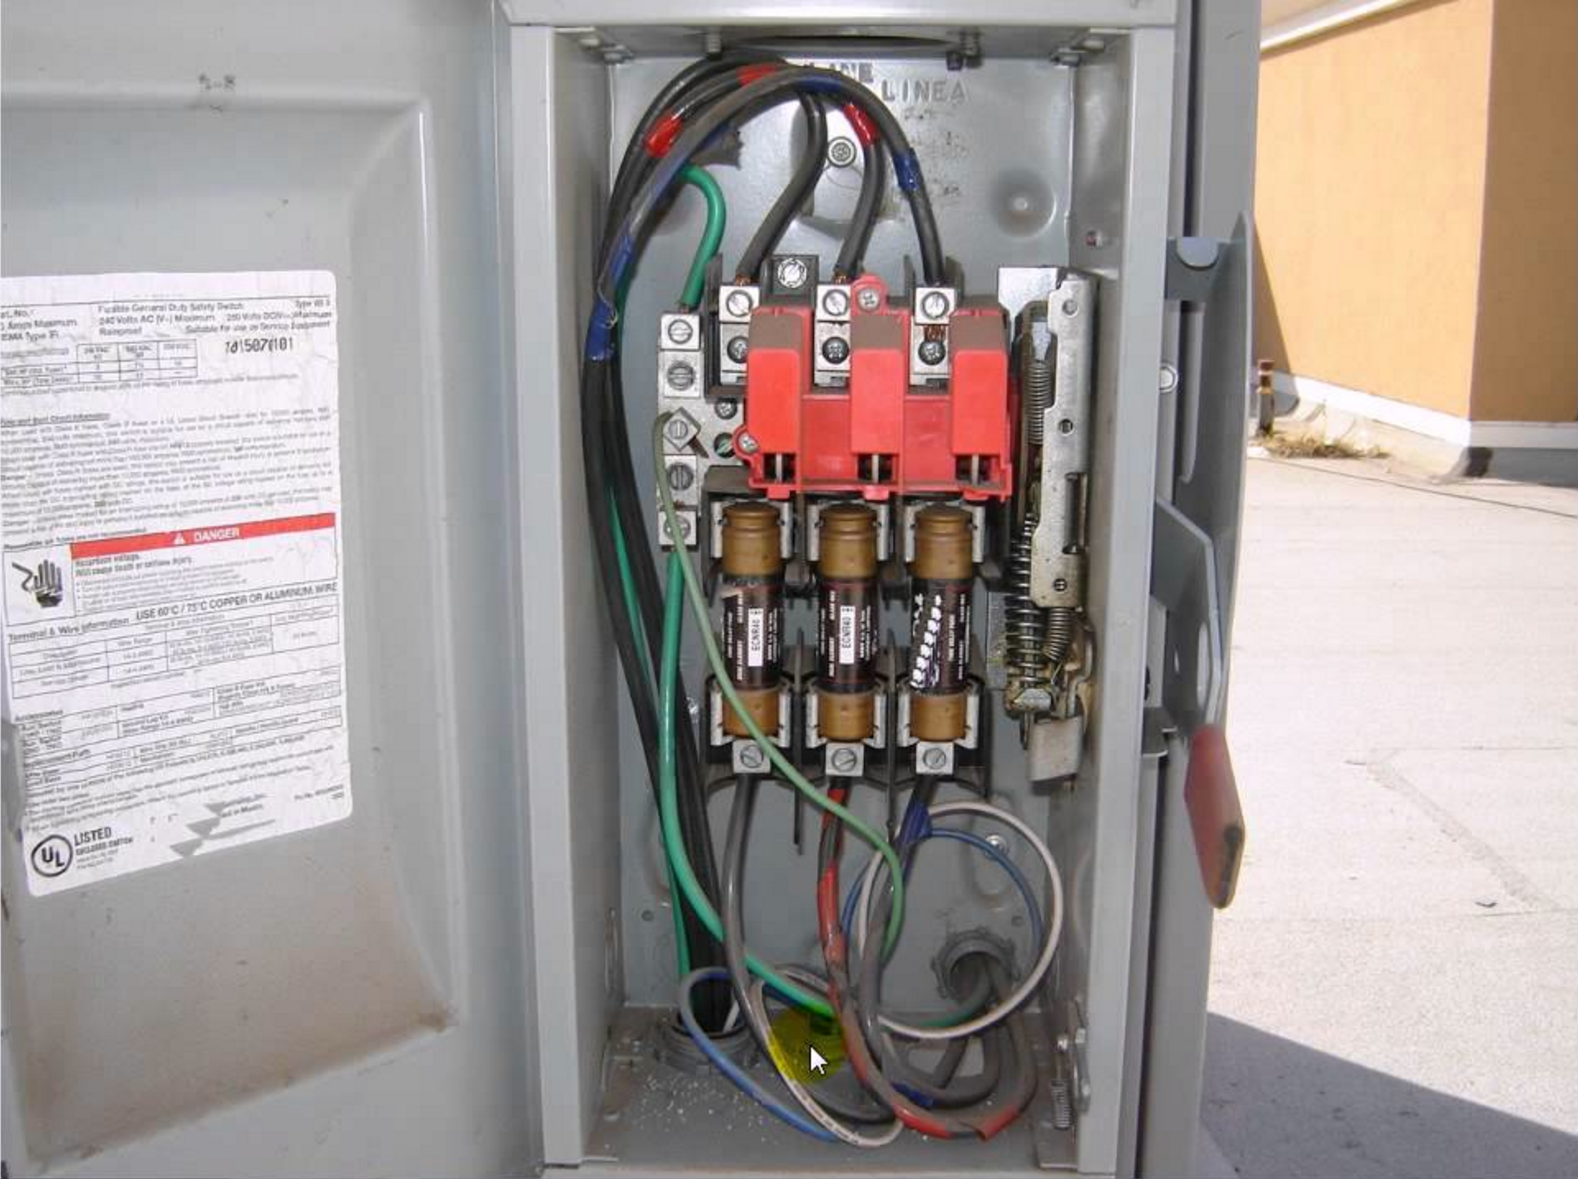 fuse box disconnect wiring diagram content Fused Disconnect